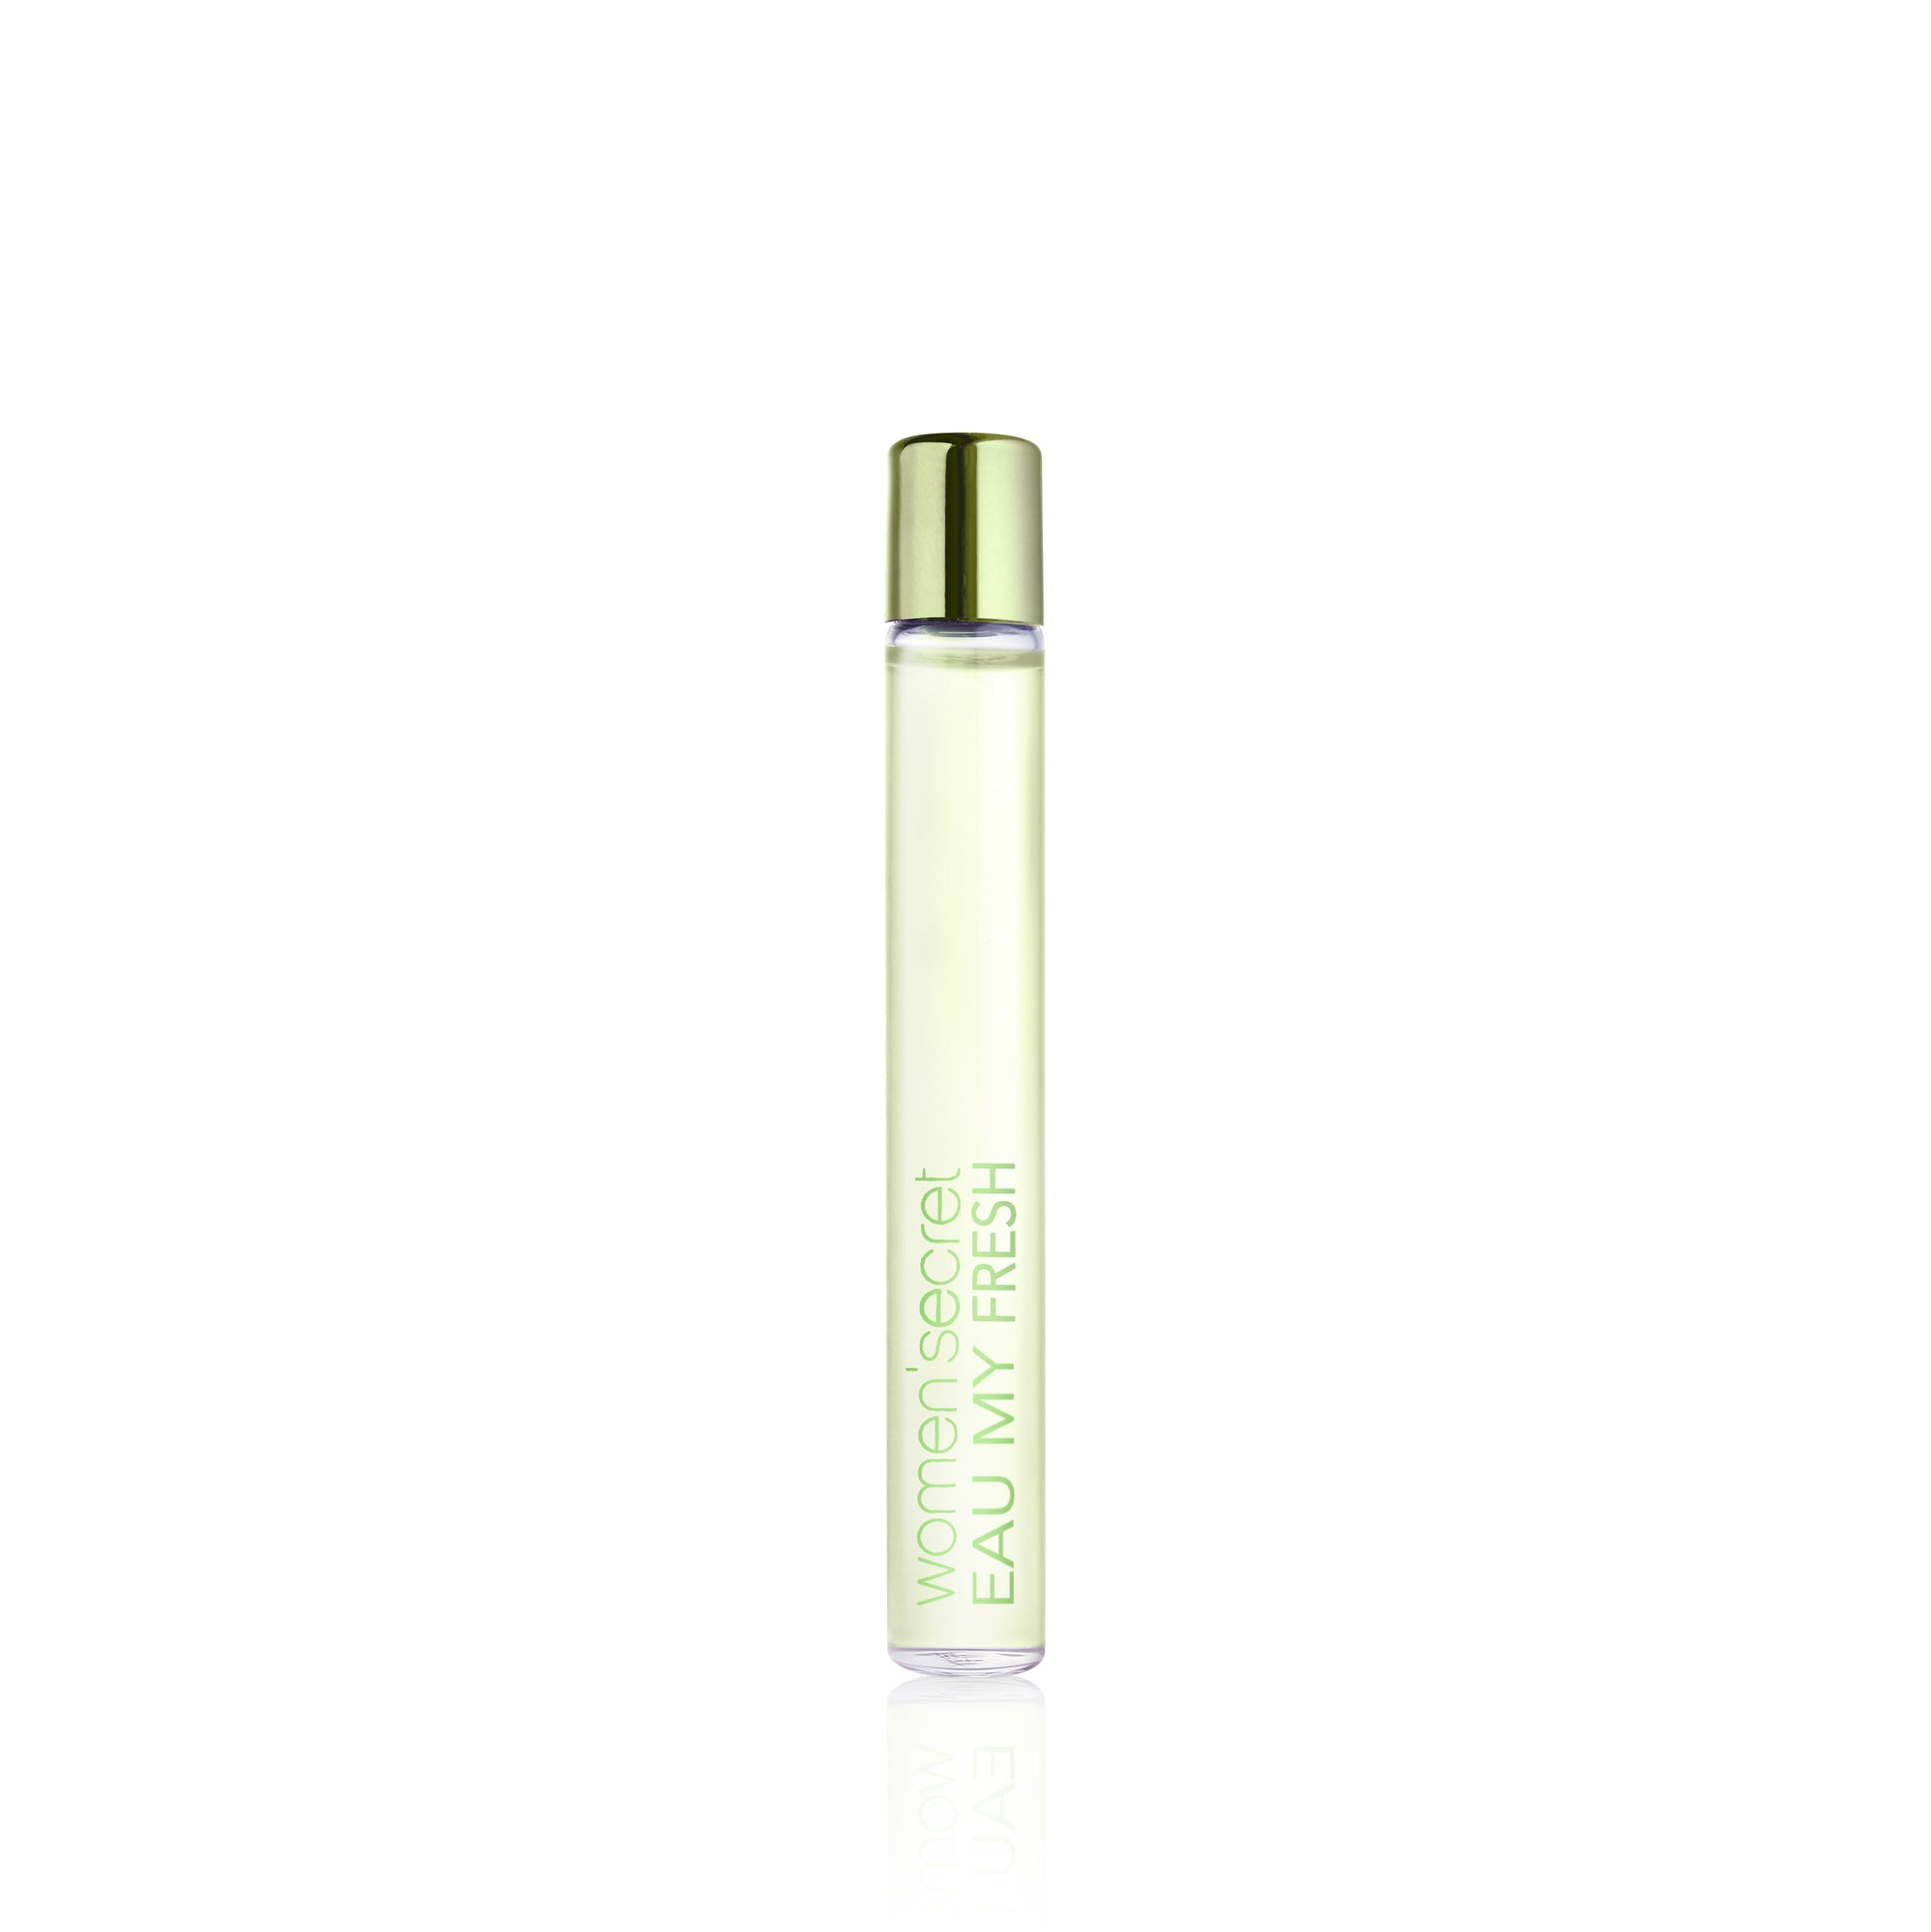 Women's Secret Eau It's Fresh Roll On